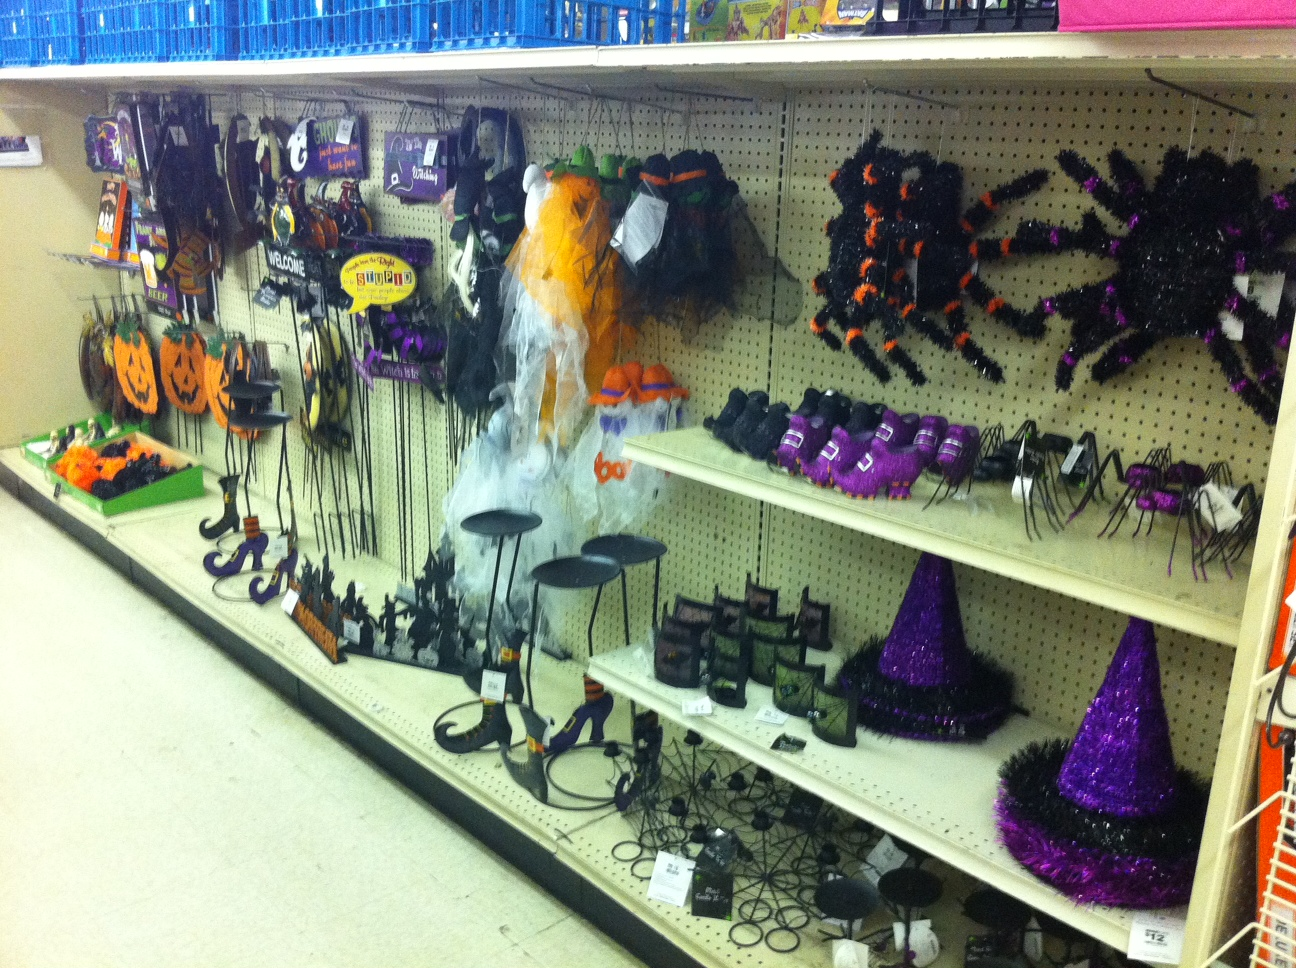 Aisle At Big Lots Stocked With More Halloween Stuff